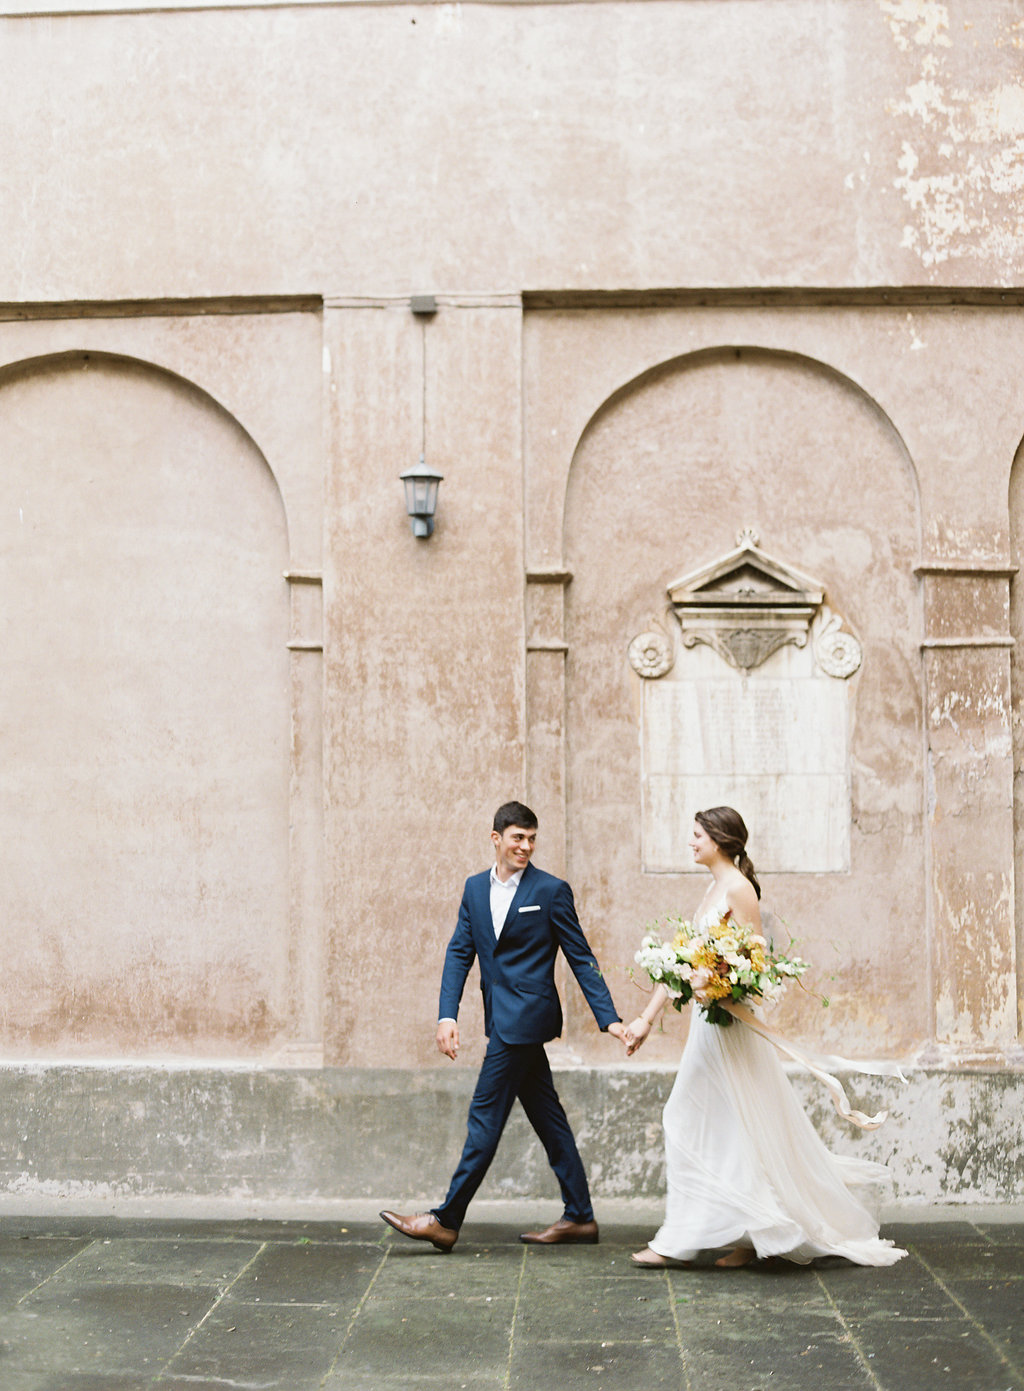 Vicki_Grafton_Photography_Rome_Italy_Wedding_Photographer_2017-74.jpg